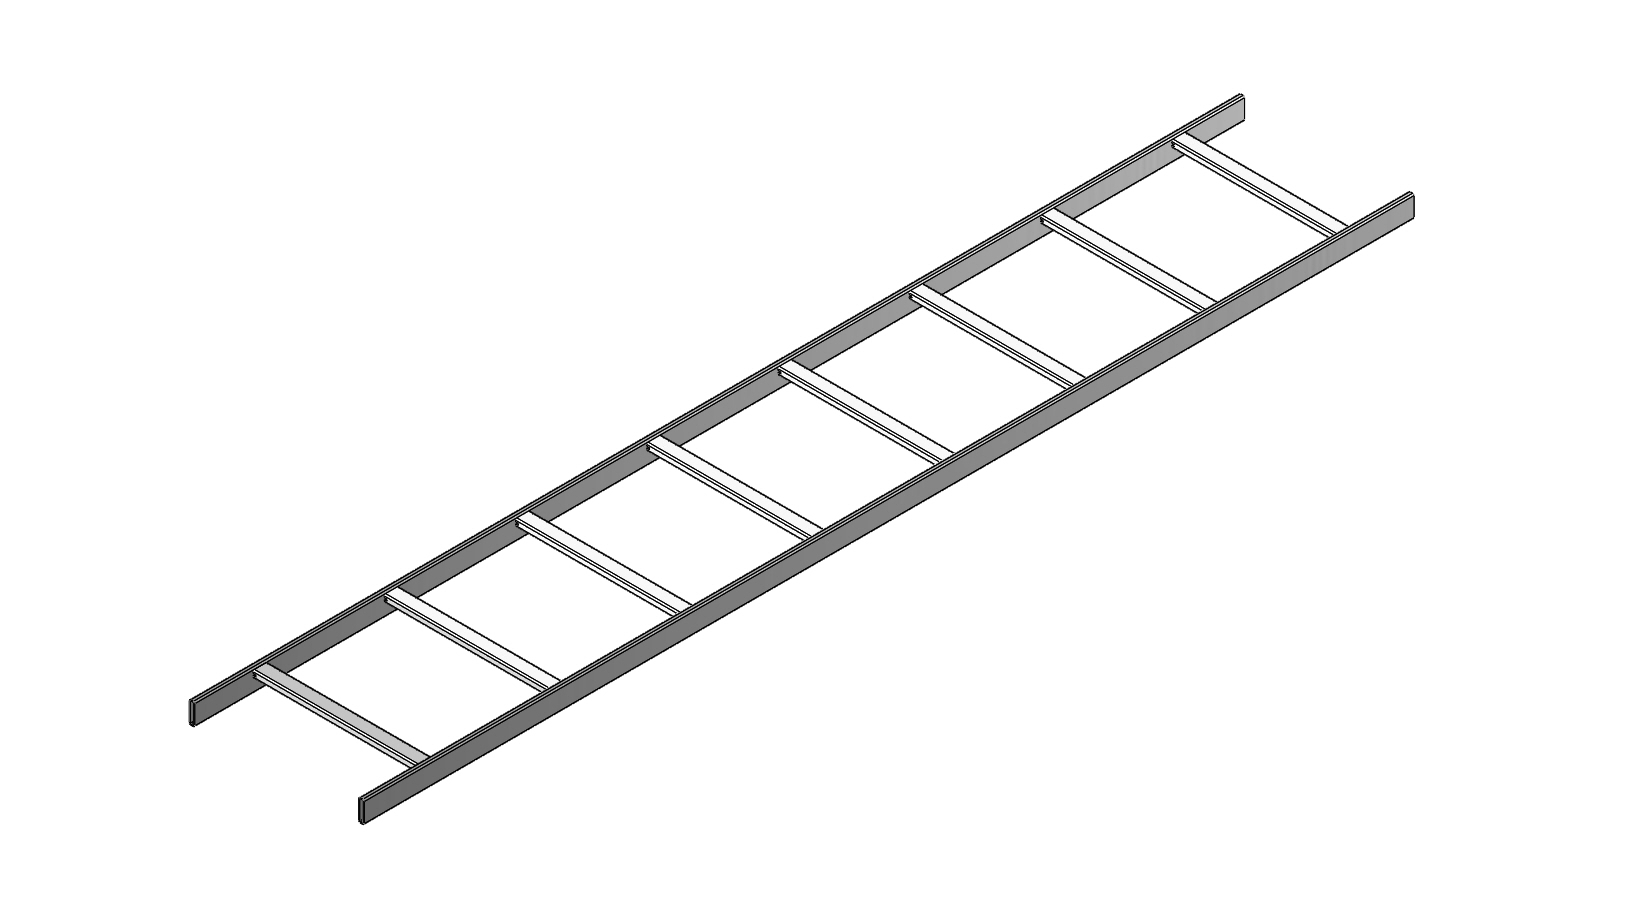 Section I - Ladder Rack